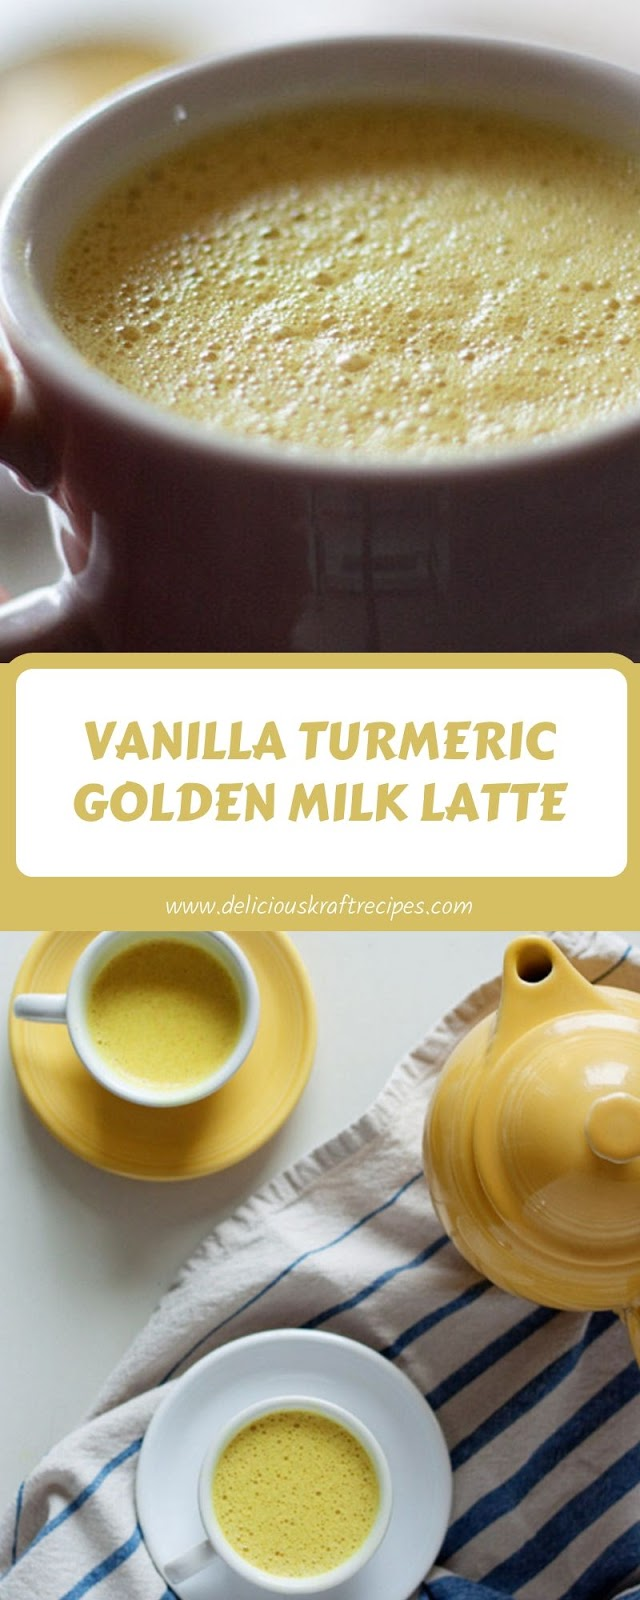 VANILLA TURMERIC GOLDEN MILK LATTE